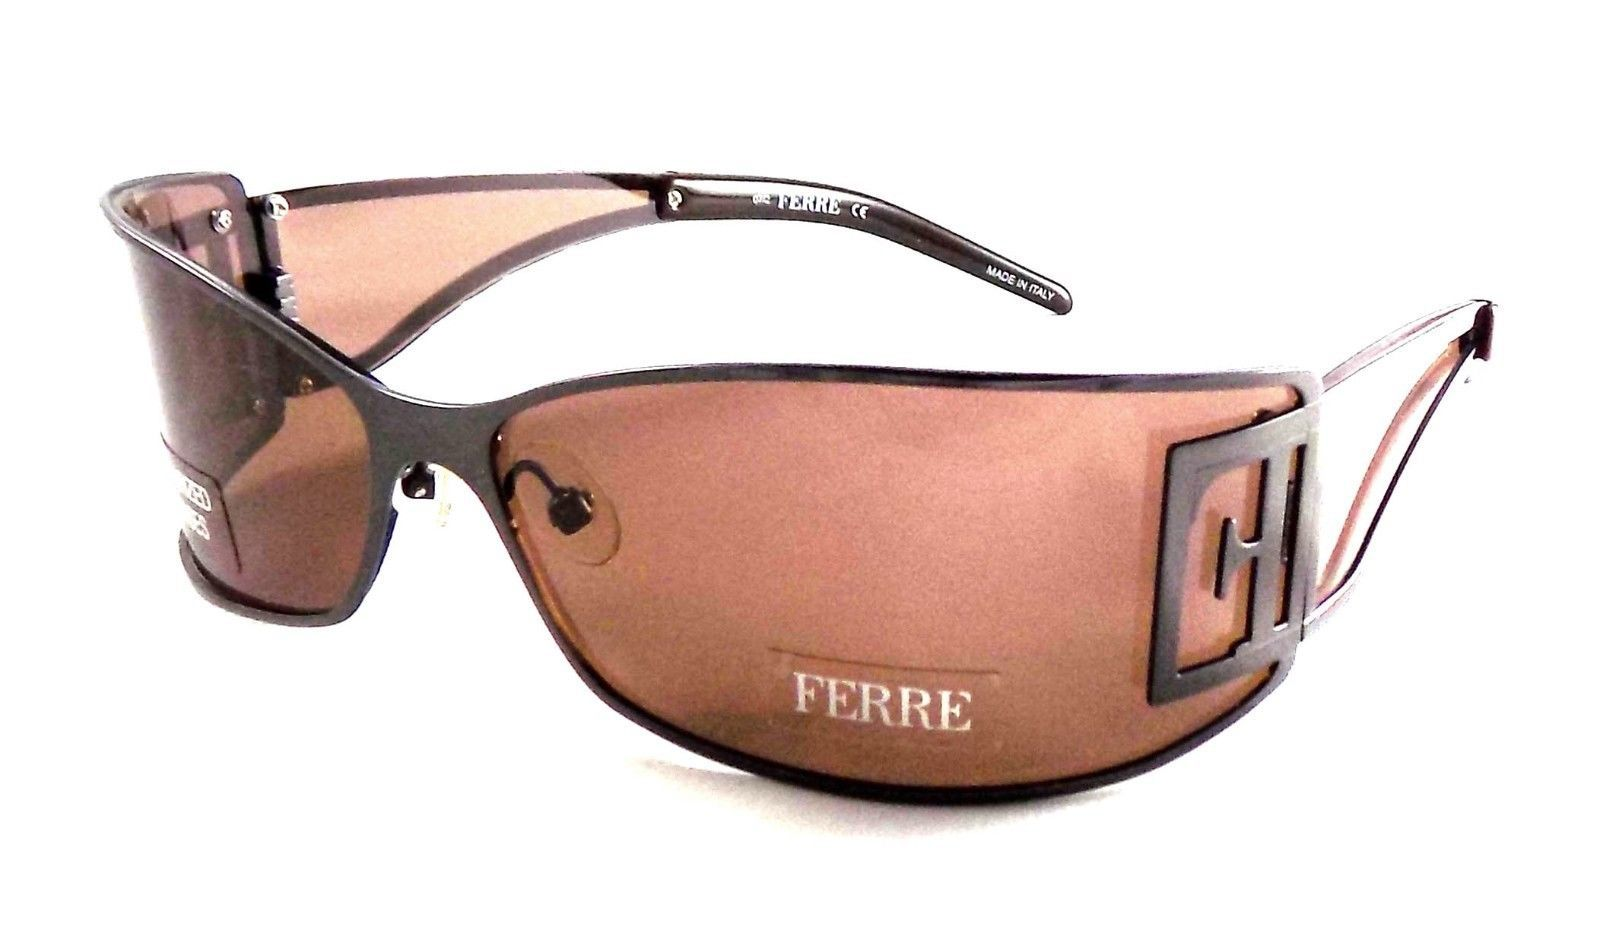 Gianfranco Ferre GF 76704 POLARIZED Sunglasses 67x15x115 Brown / Brown ITALY